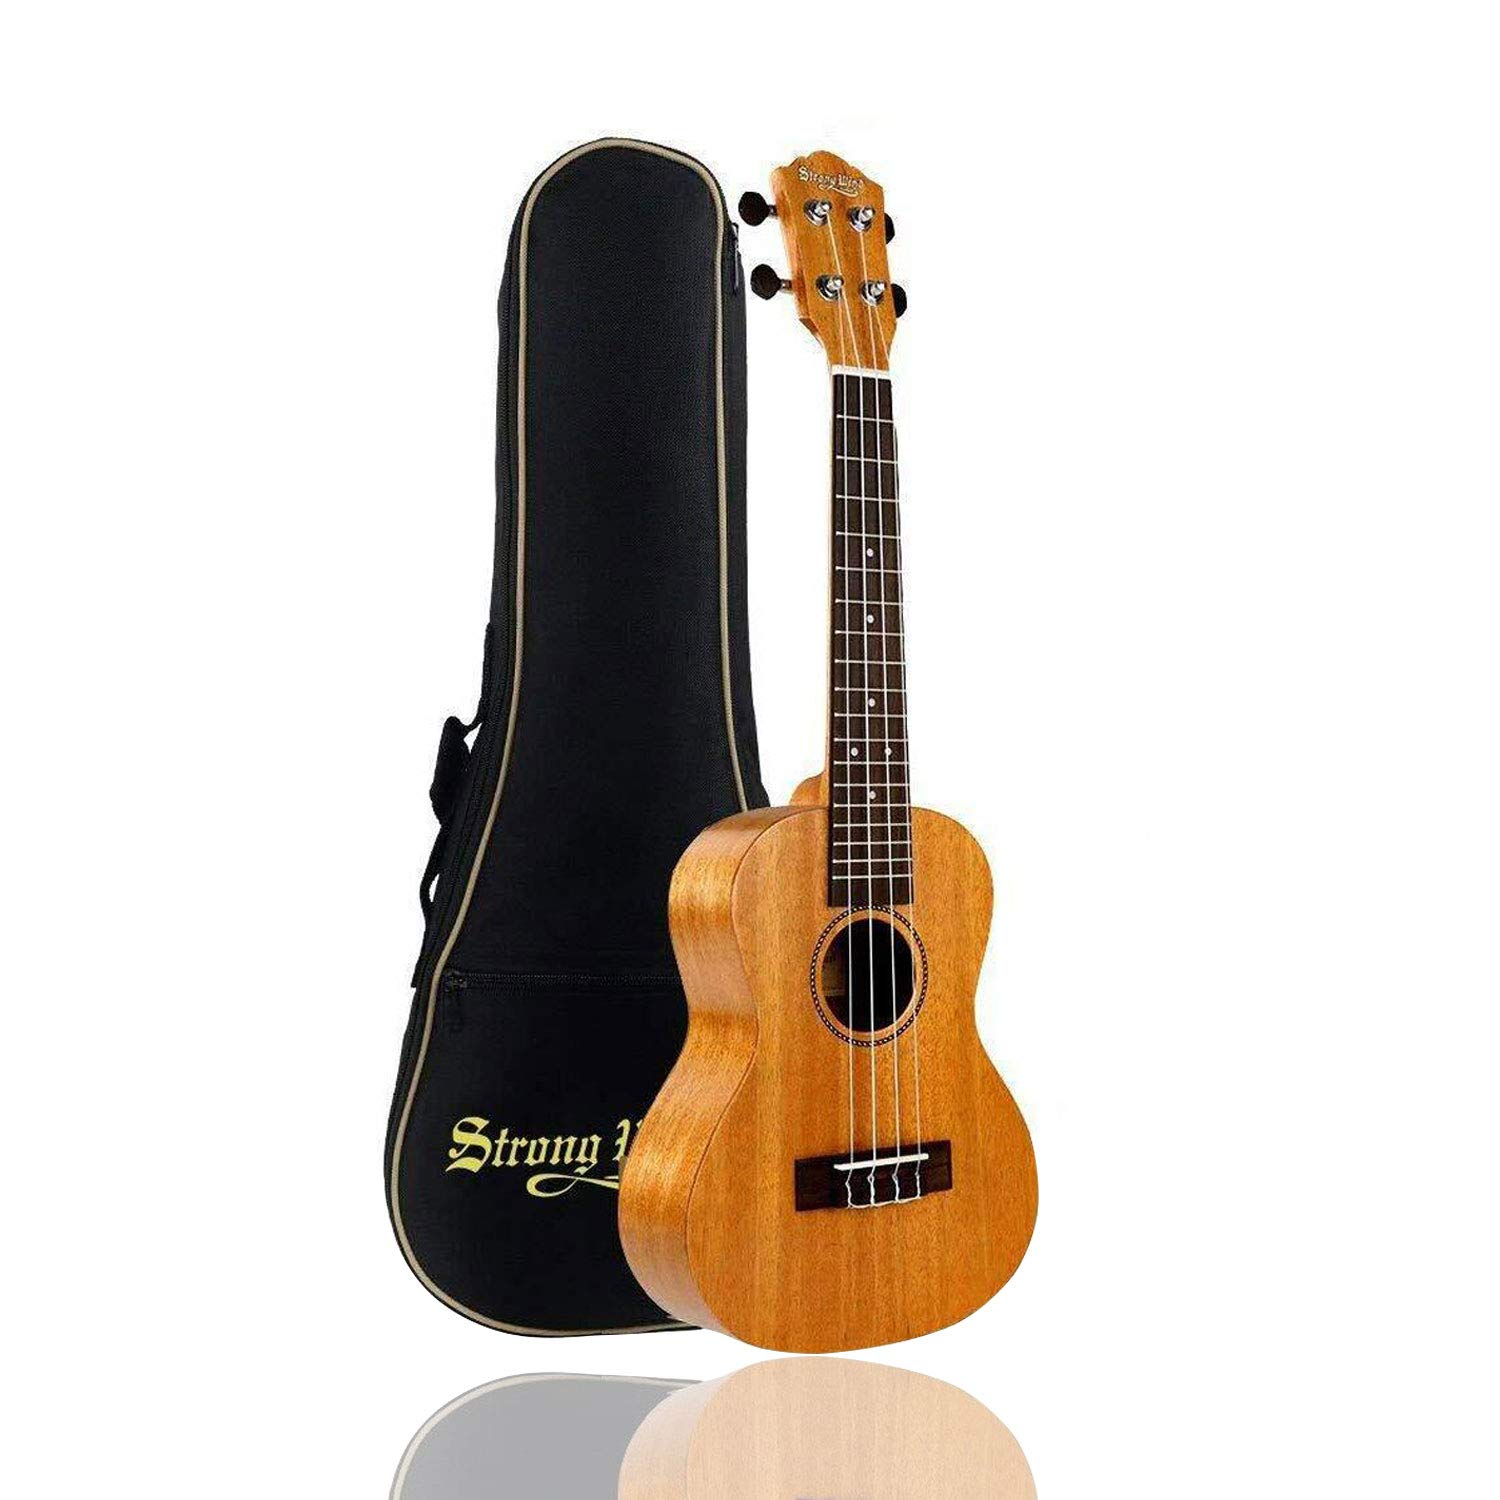 ACTUTECH Professional 23 Inch Concert Ukulele Mahogany Rosewood Small Guitar for Beginner with Gig Bag